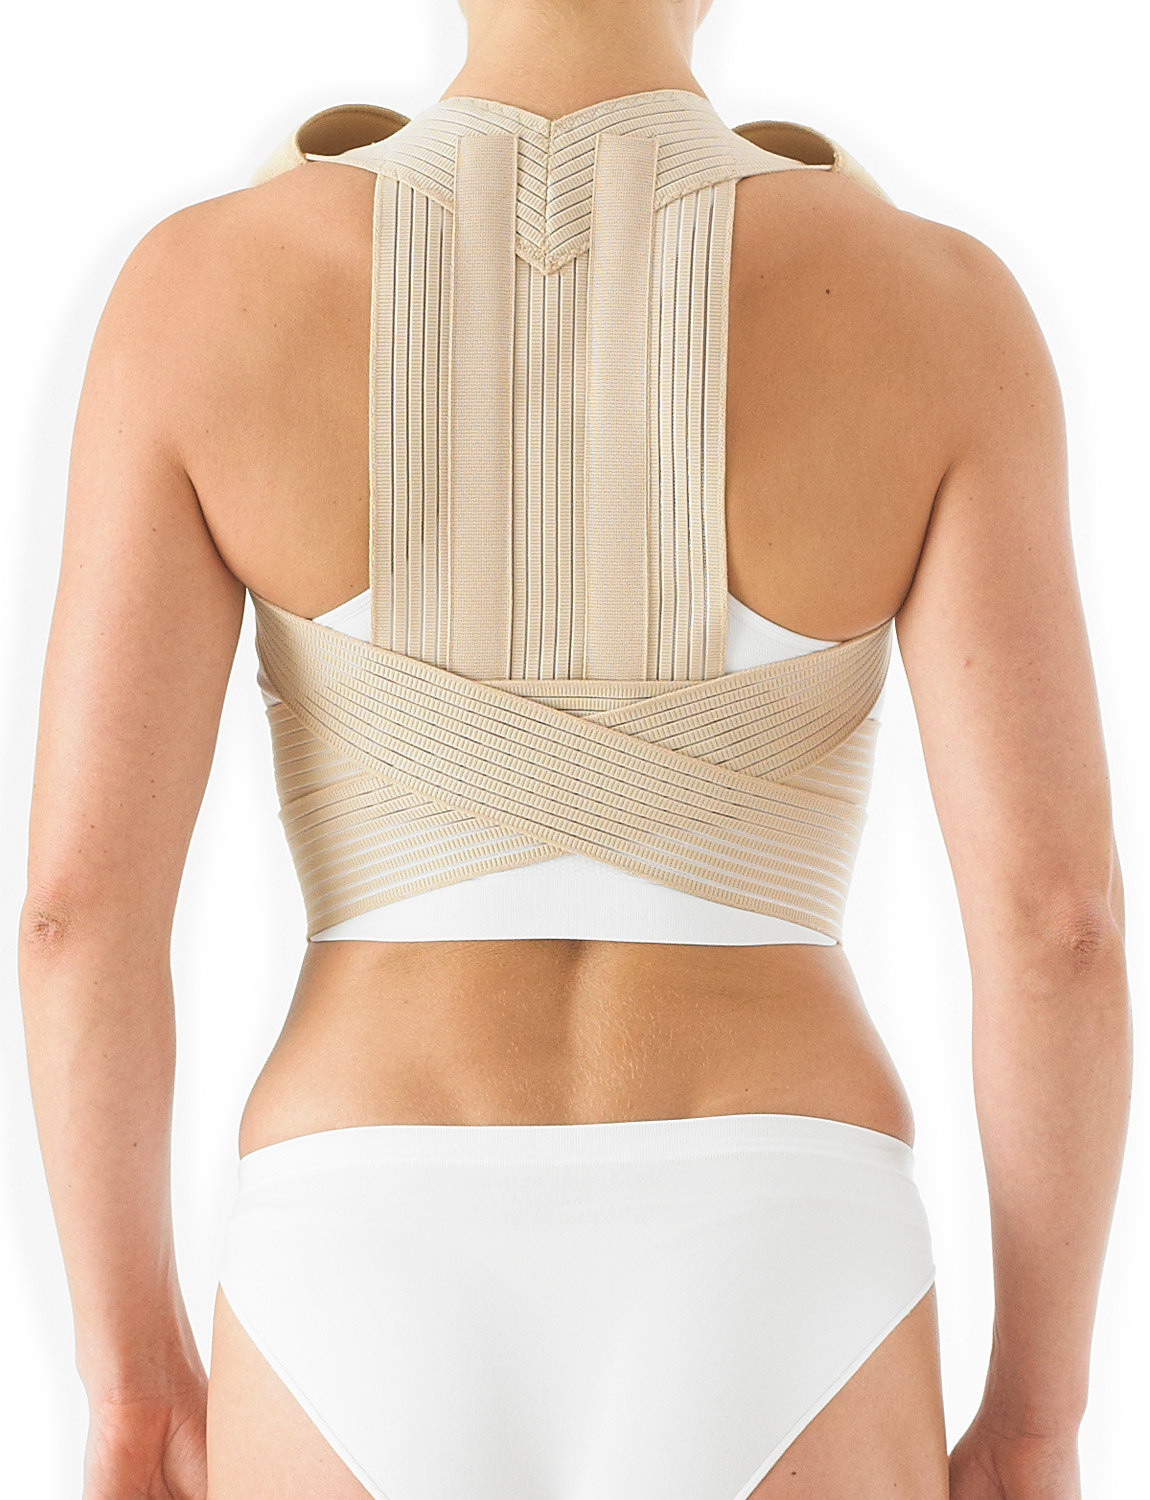 138 - CLAVICLE BRACE (POSTUREX)  Designed to help support an early kyphosis by encouraging correct alignment of the dorsal and lumbar spine. The firm yet flexible stays along with the anatomical design helps provide added support to muscles, ligaments and tendons and comfortably assists with everyday posture.